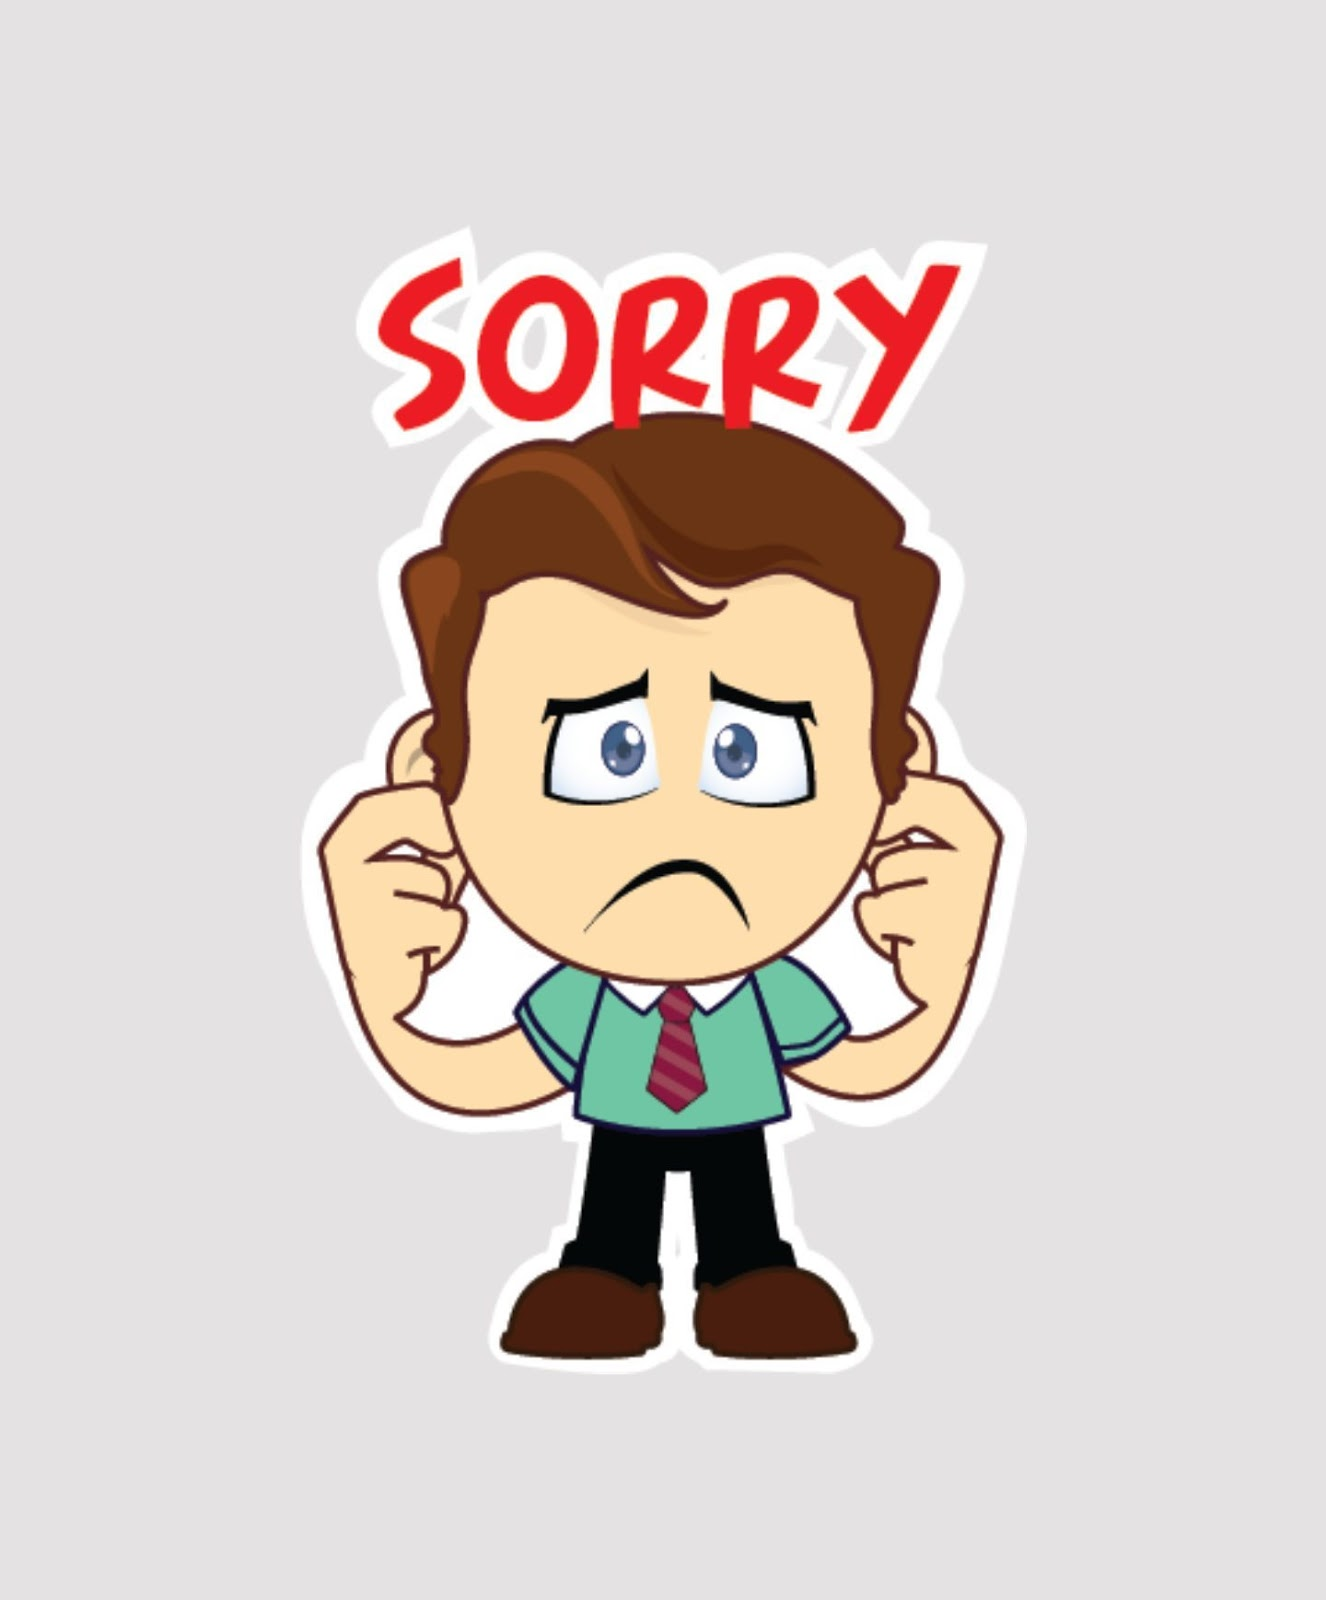 Sorry: Funny, Cute, Exam, Attitude & Best Whatsapp DP Images